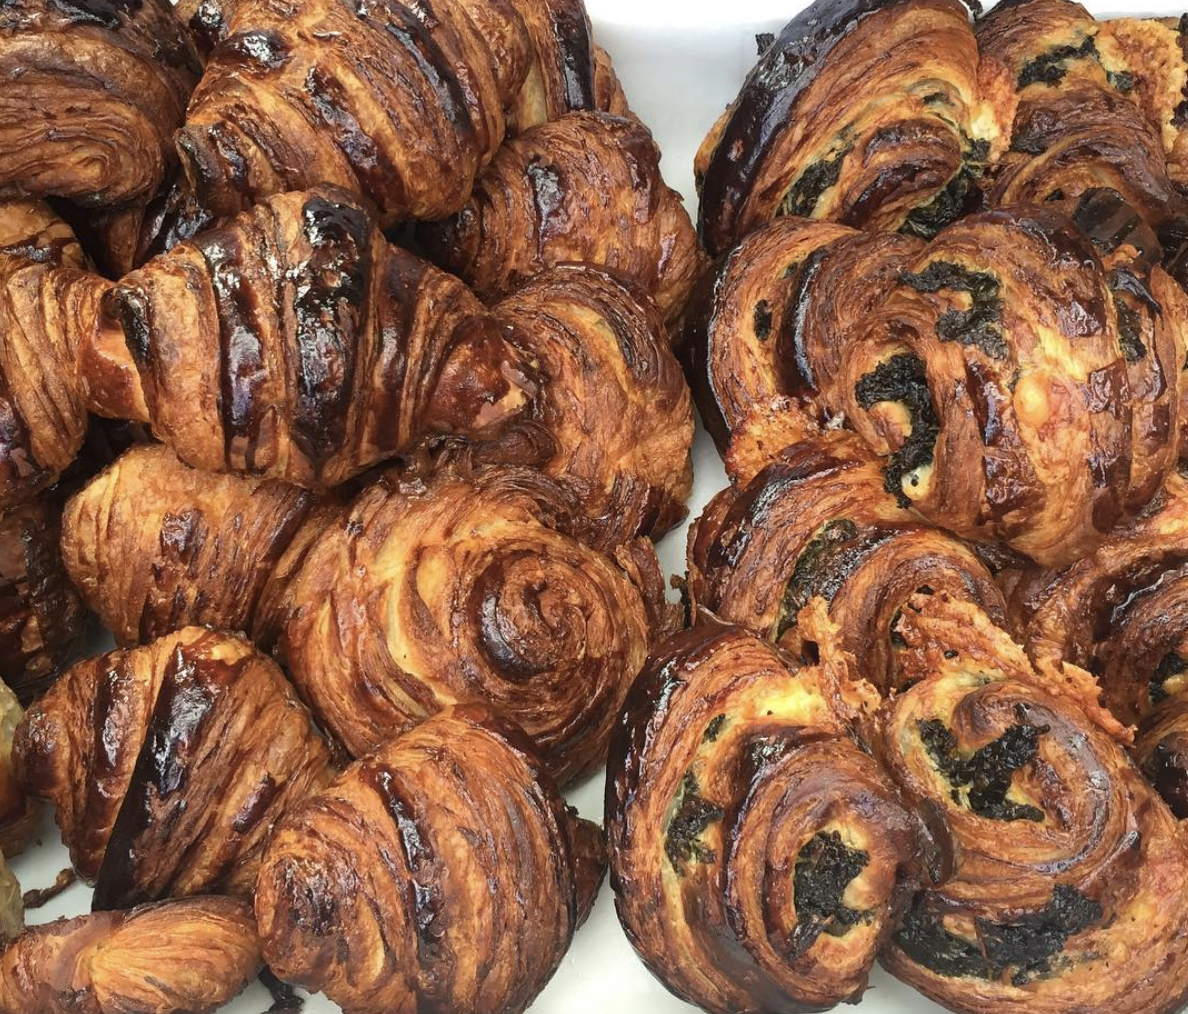 A selection of Kate's sought-after croissants. Before Echo's and depending on the day, one might find Leo's bread and pastries at  St. Roch Market ,  Crescent City Farmer's Market  or Kate herself serving at a pop-up at  Solo Espresso . [Photo via  Leo's Bread ]